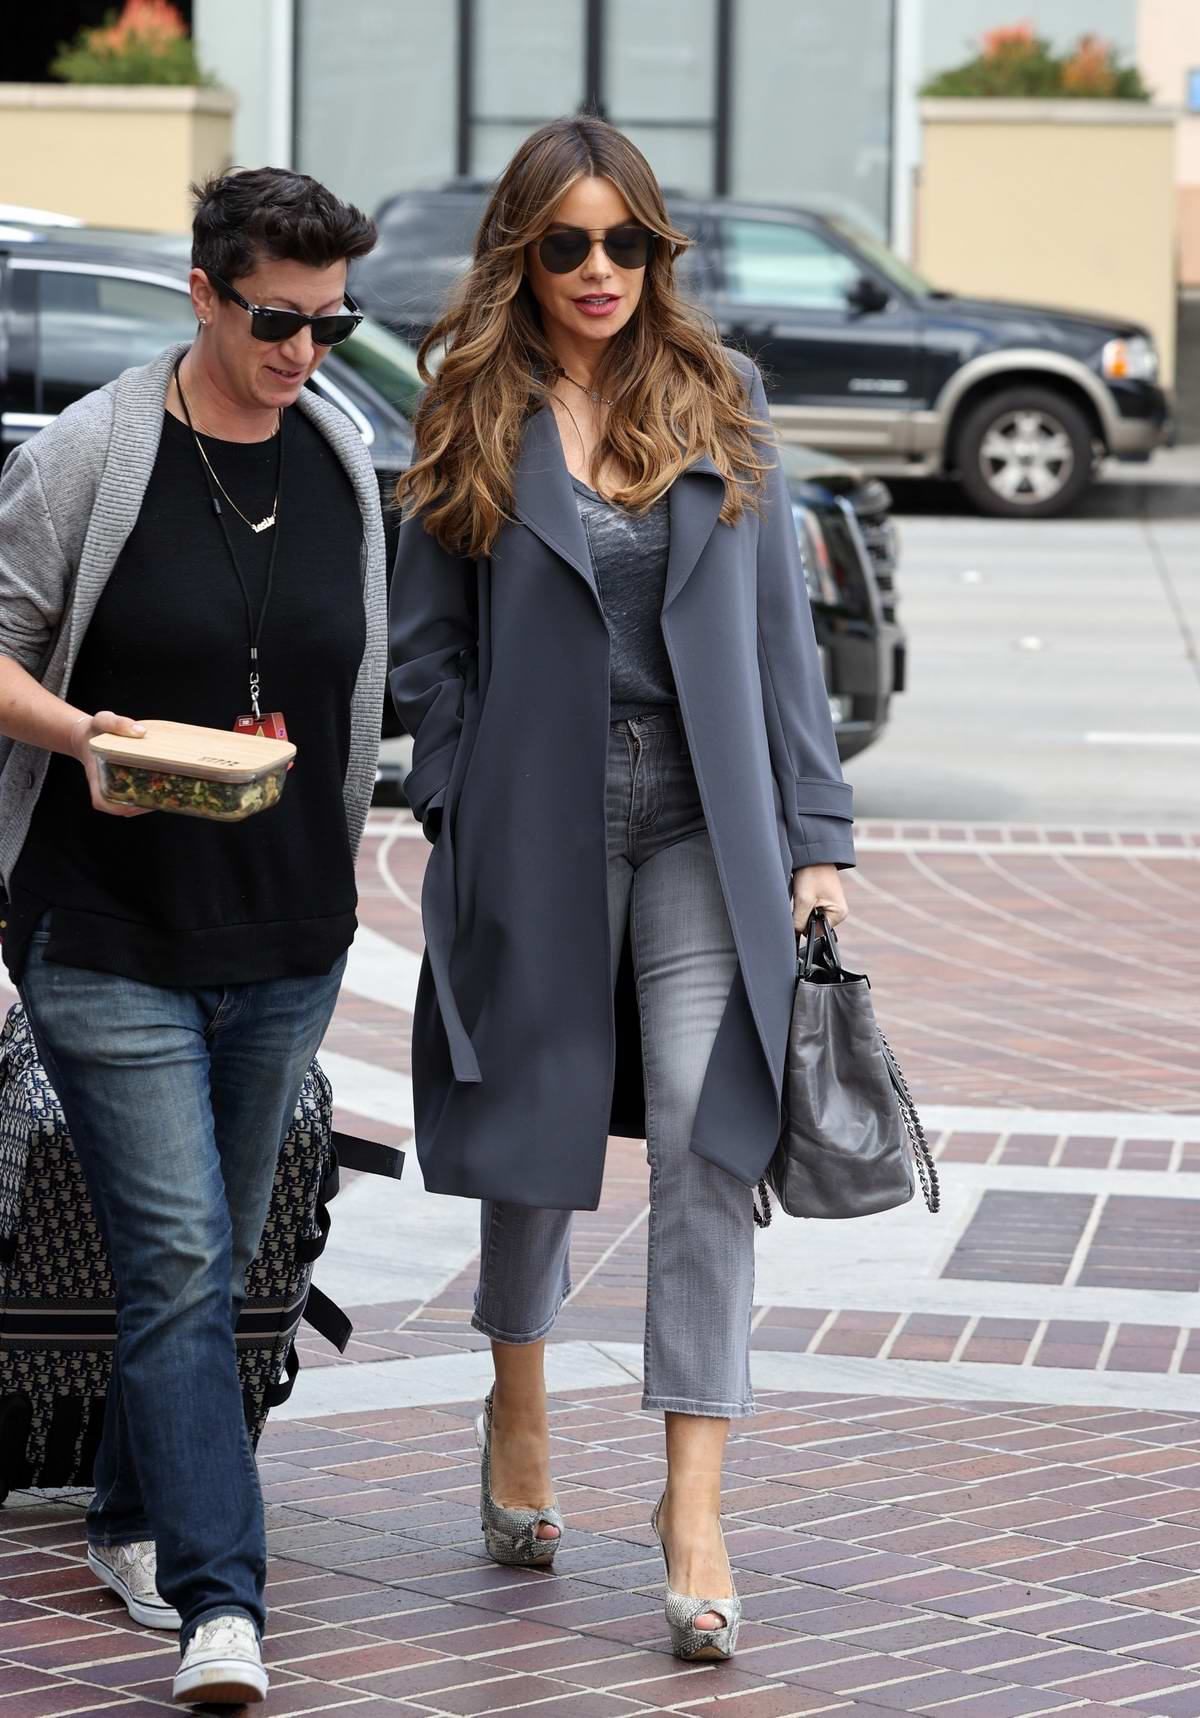 Sofia Vergara keeps it fashionable as she arrives at America's Got Talent in Pasadena, California